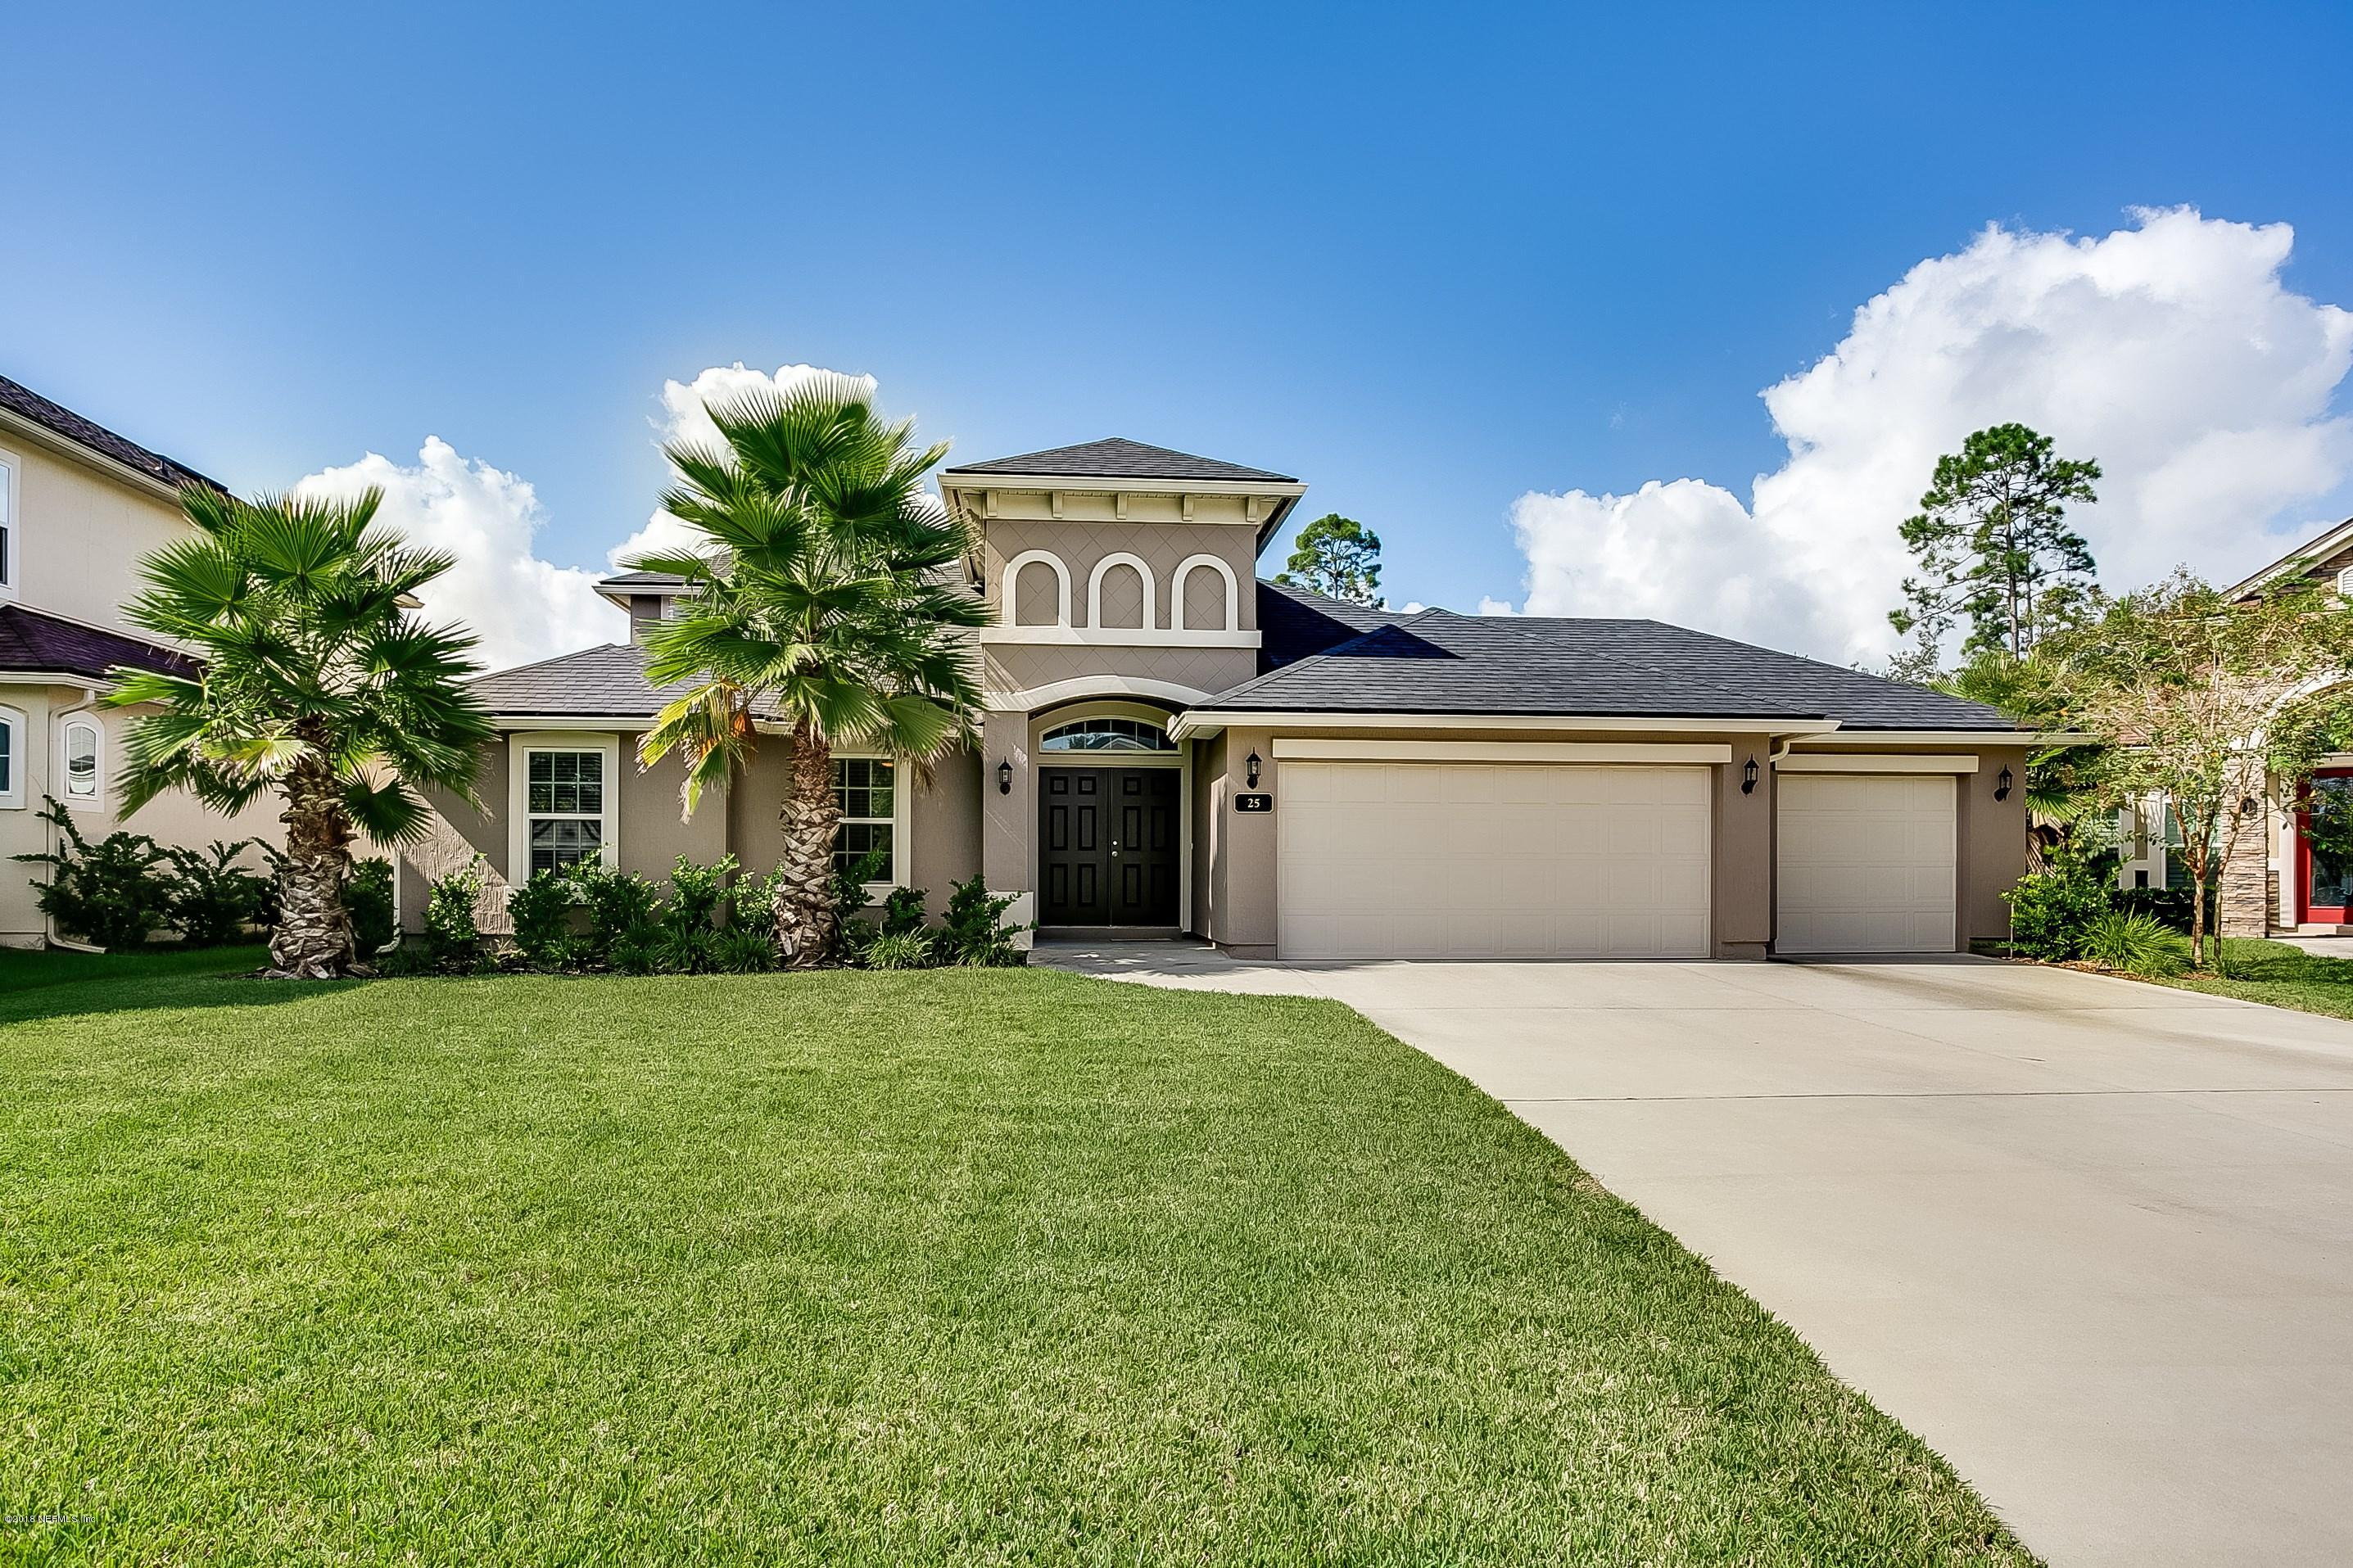 25 SUMMER SUN, ST AUGUSTINE, FLORIDA 32092, 6 Bedrooms Bedrooms, ,3 BathroomsBathrooms,Residential - single family,For sale,SUMMER SUN,959309